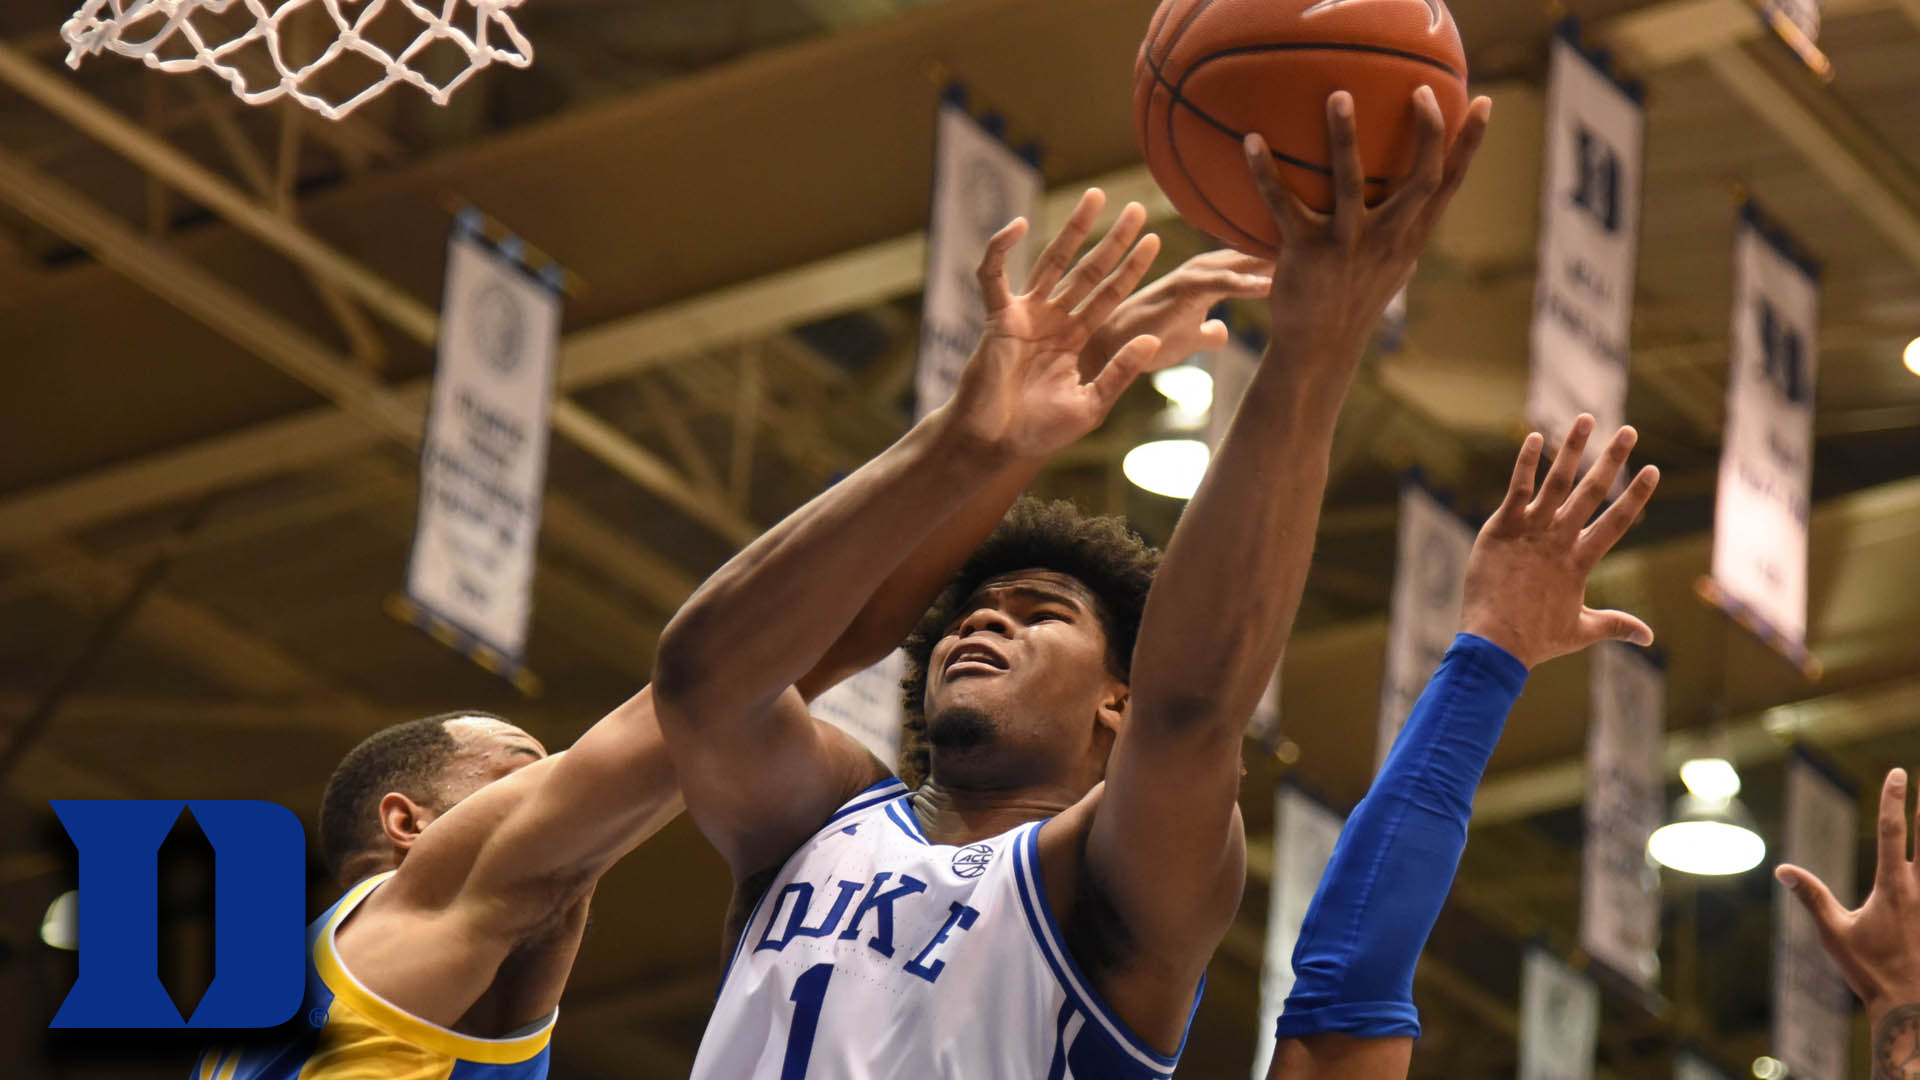 Blue Devils Take Down Panthers 79 – 67; Vernon Carey Scores 26 Points & 13 Rebounds; Tre Jones with 15 Points & 8 Assists